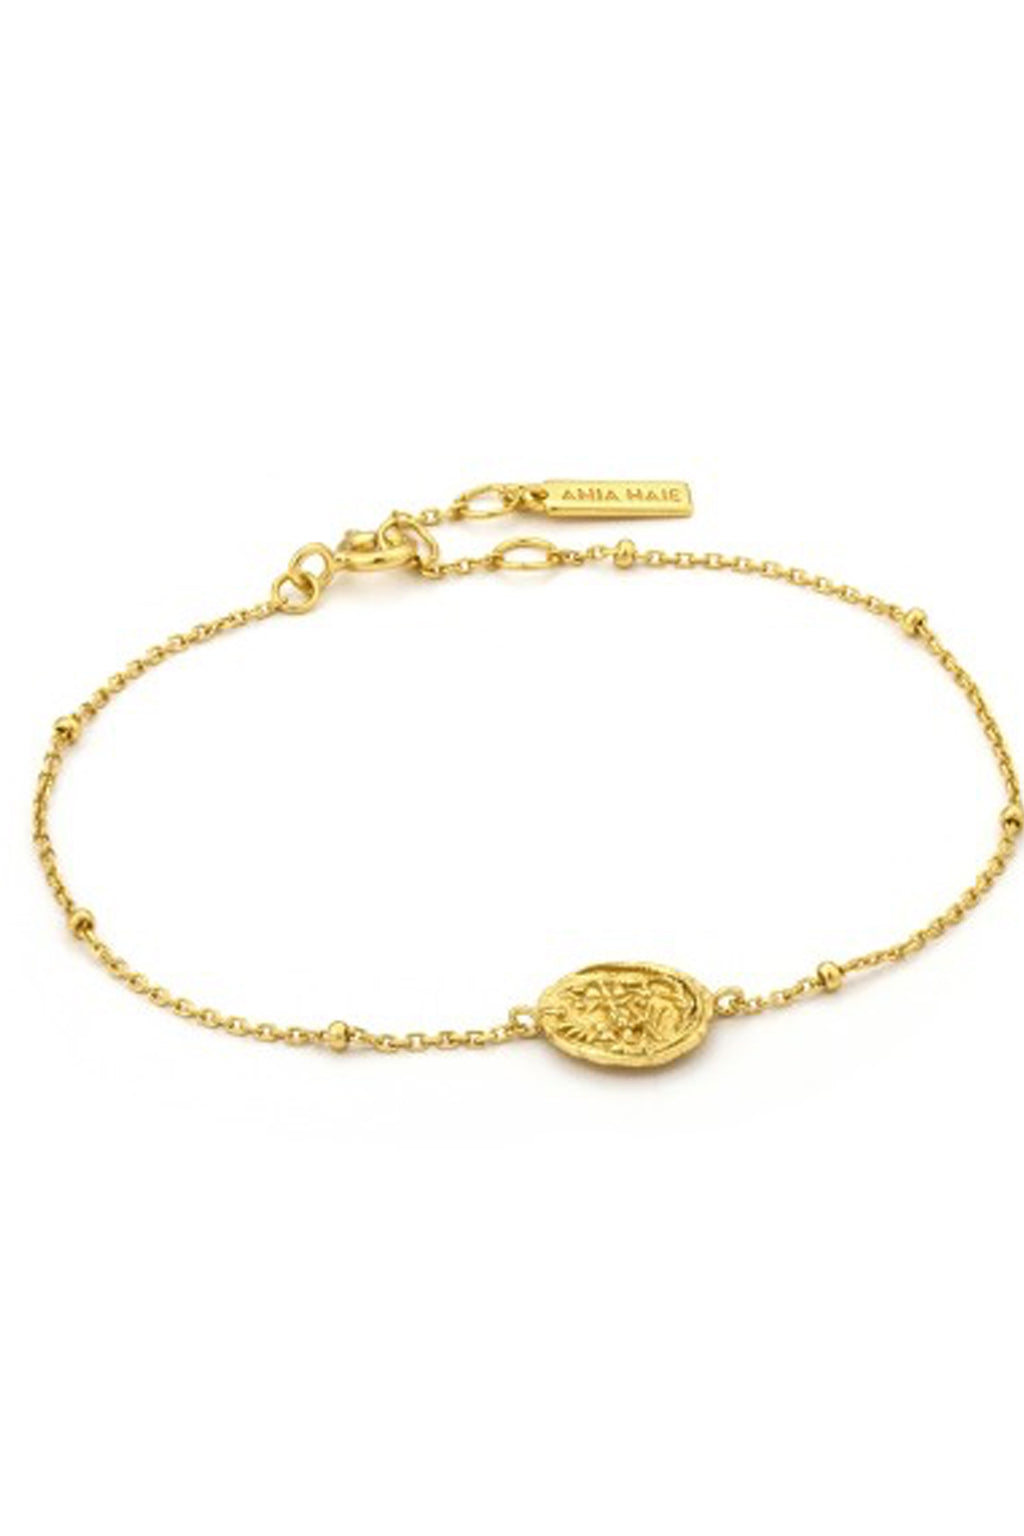 Ania Haie Coins Medallion Bracelet - The Mercantile London